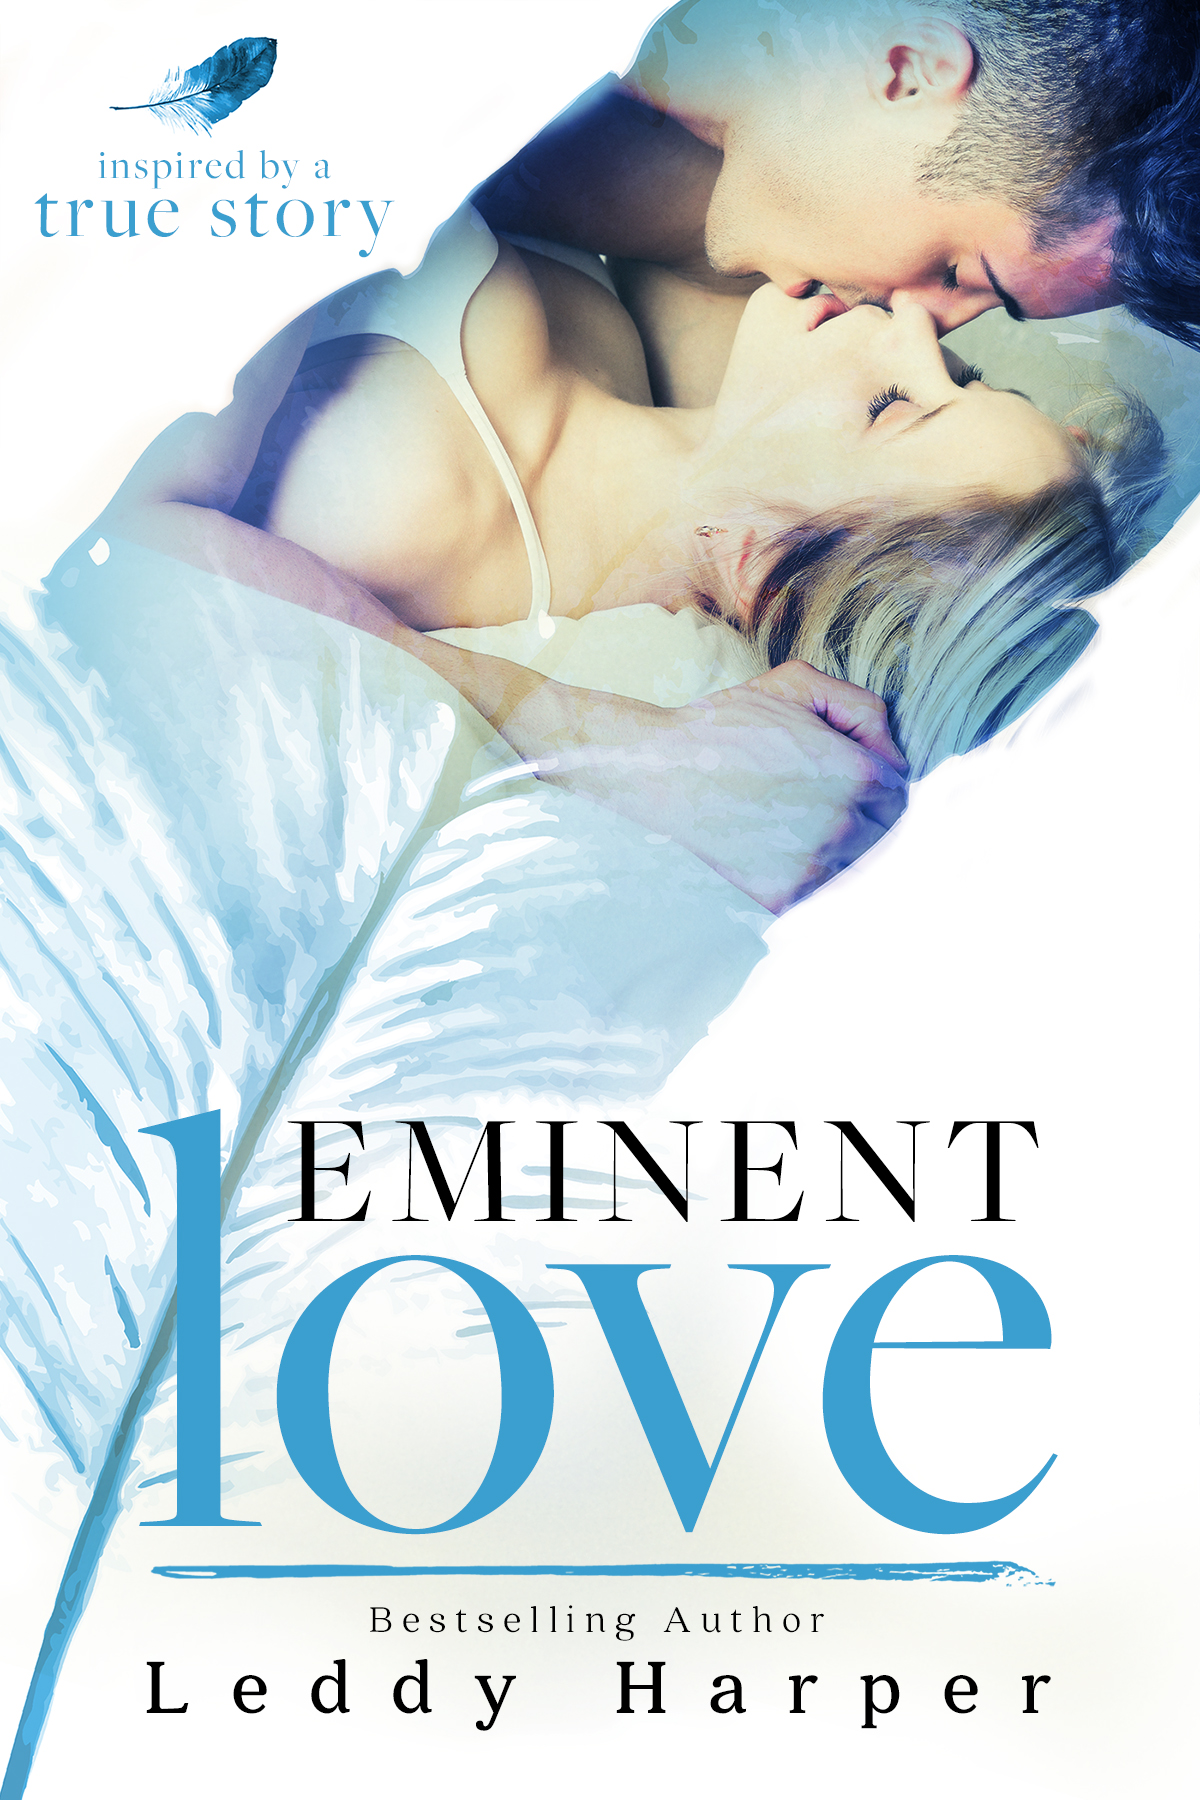 REVIEW: Eminent Love by Leddy Harper